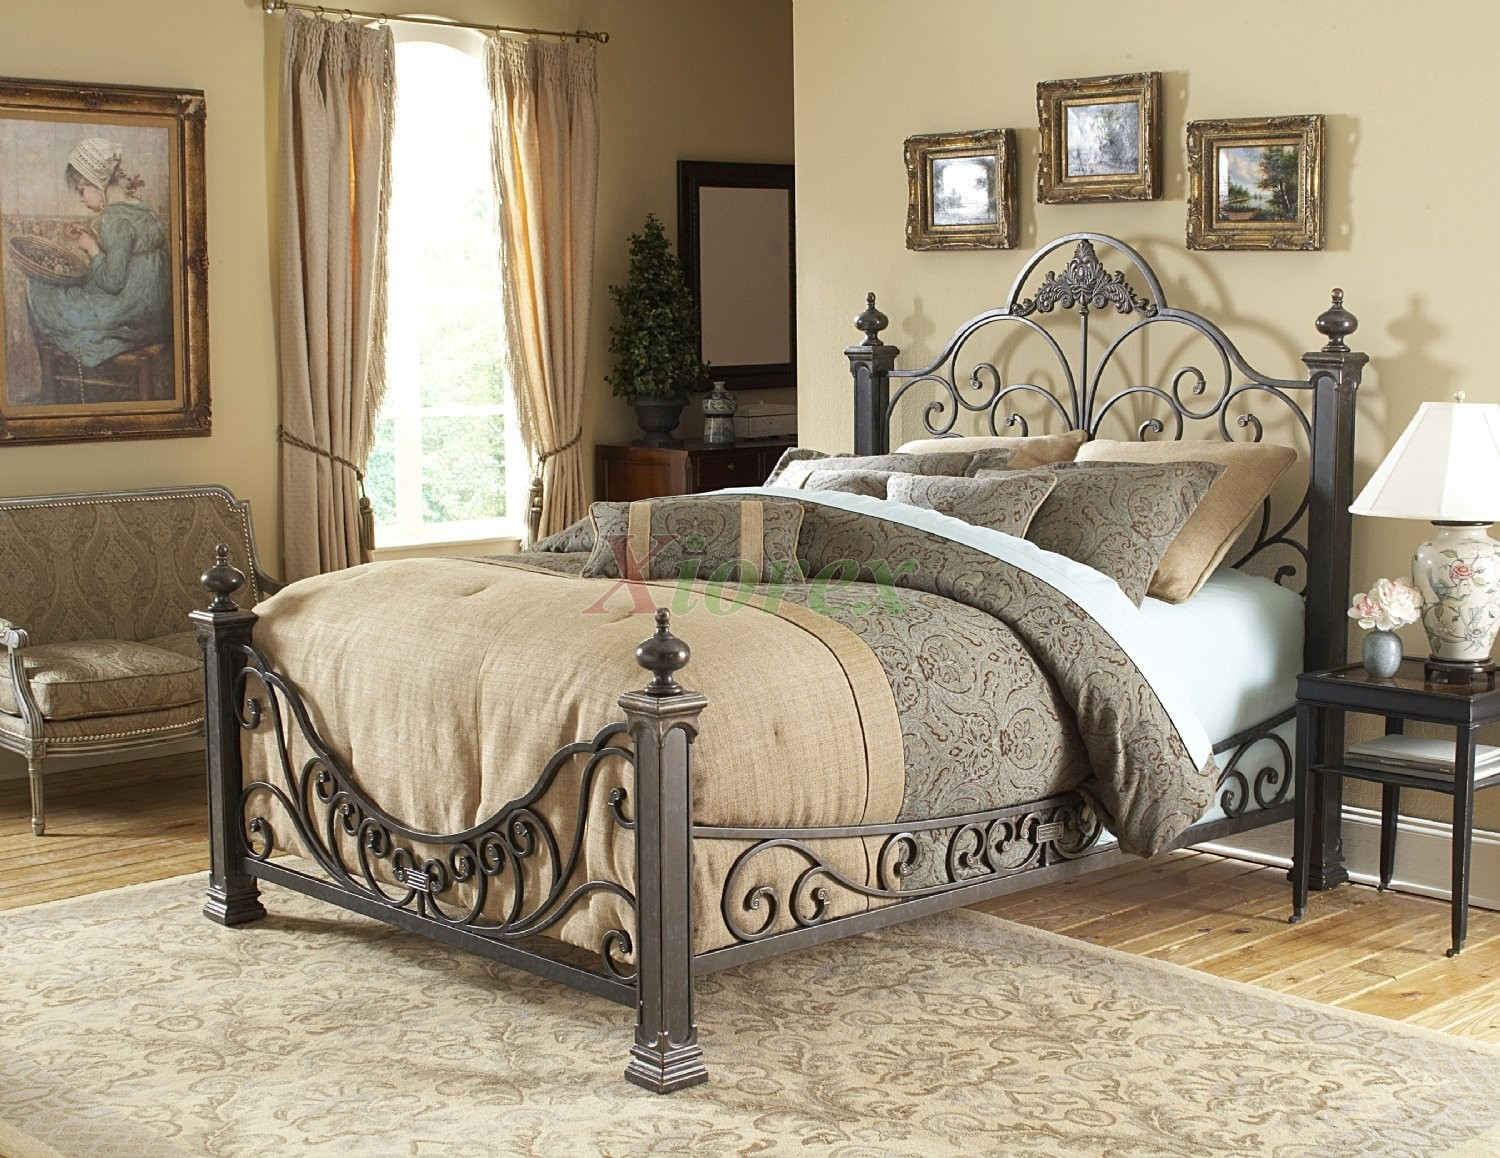 Fashion Bedroom Furniture Amazing Baroque Bed  Poster Bed In Gilded Slatefashion Bed Group  Xiorex Decorating Inspiration